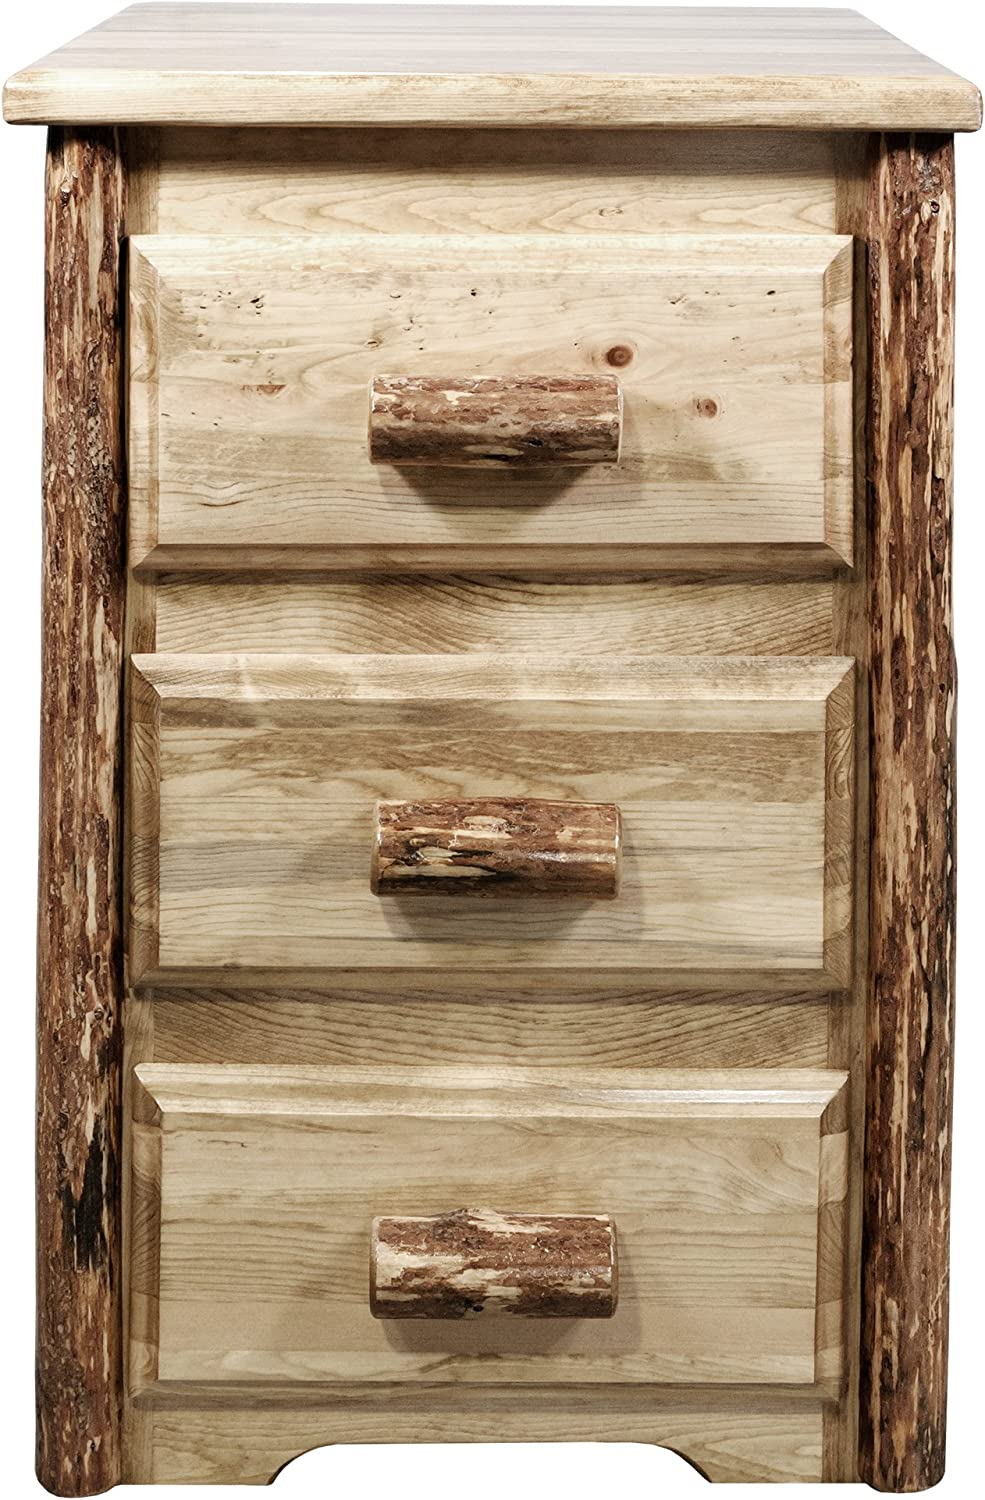 American Woodcrafters Heirloom Nightstand, Antique White